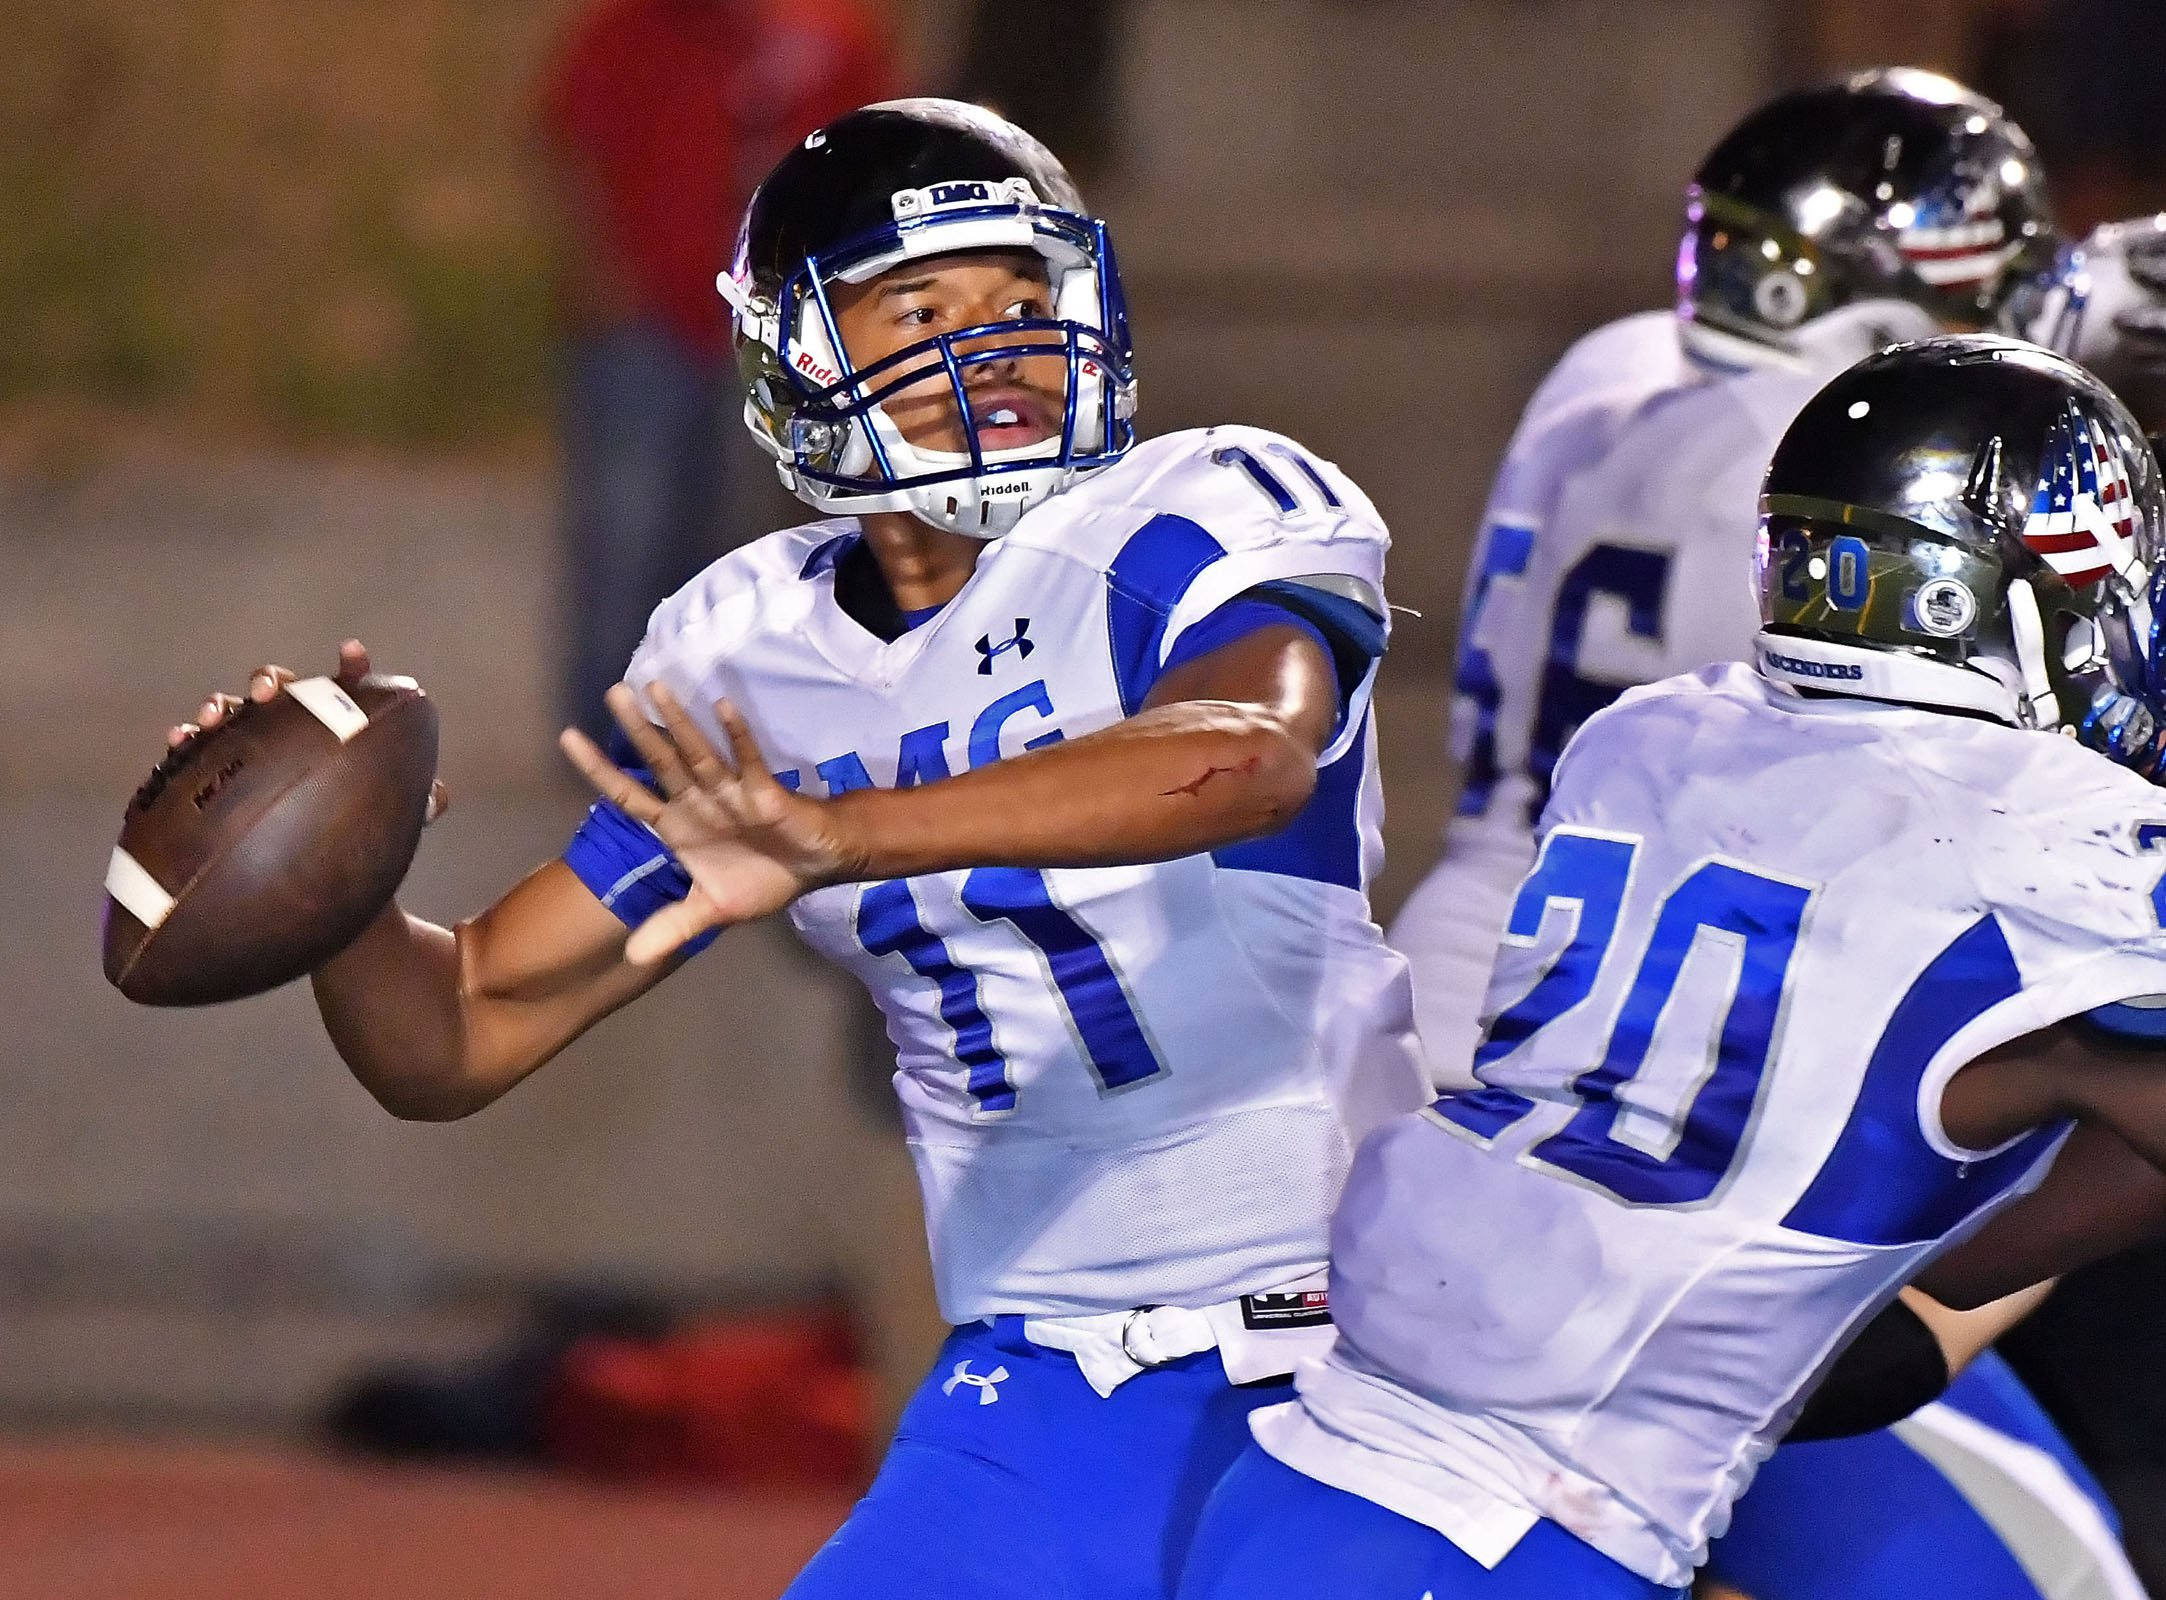 Quarterback Kellen Mond led No. 2 IMG Academy to a thrilling 50-49 victory over No. 19 Centennial-Corona on Saturday night in California.